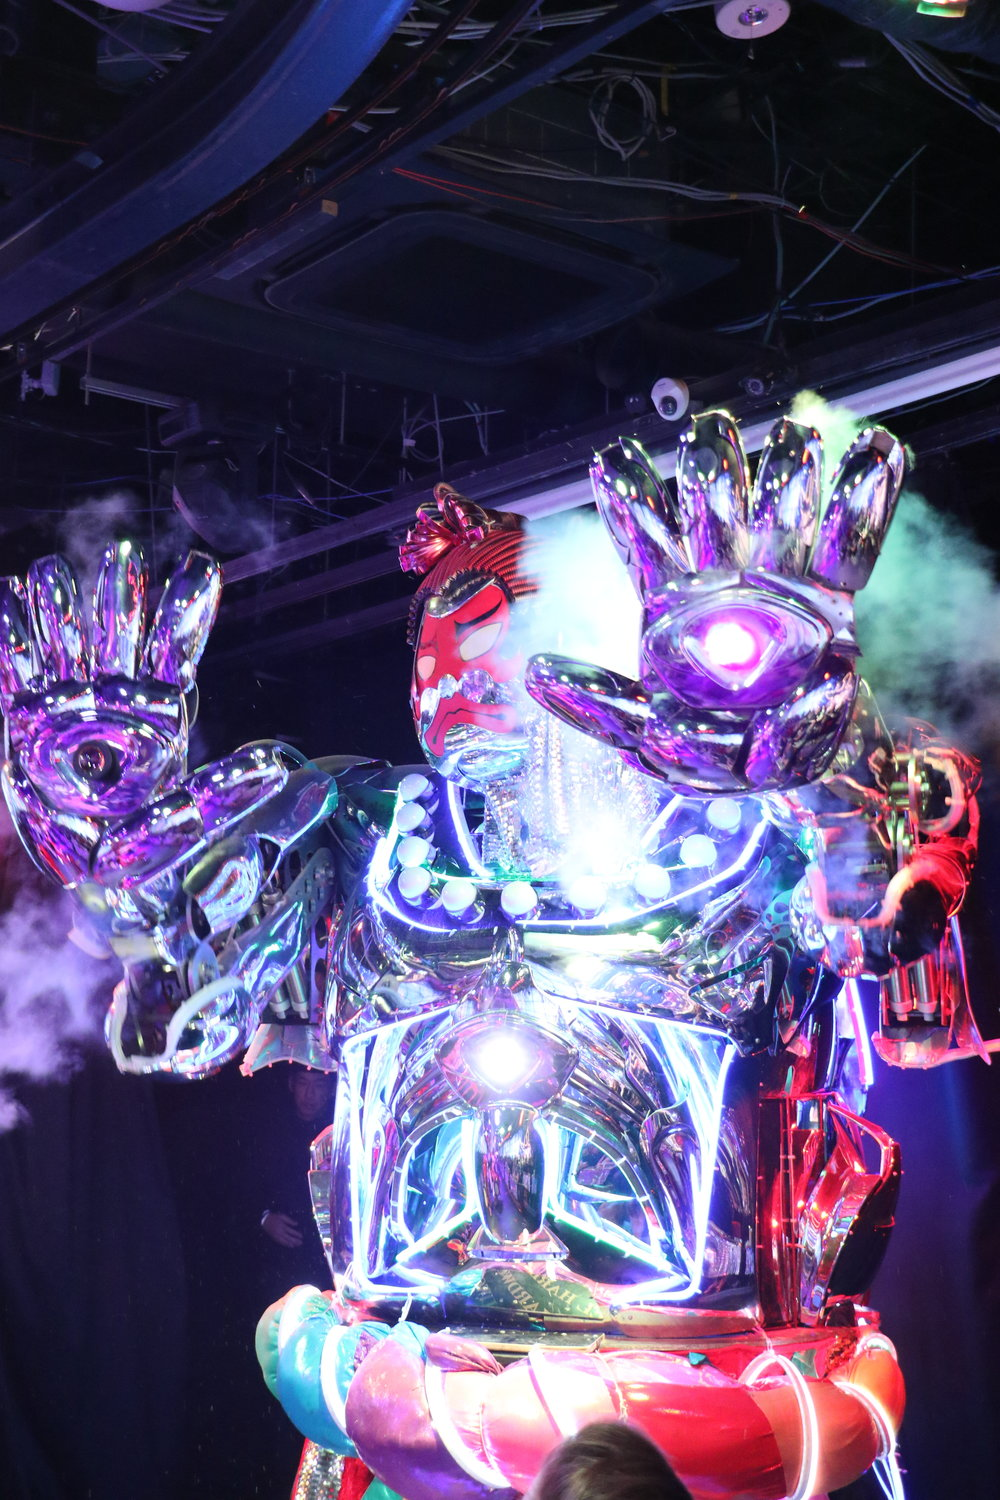 Neon robot preforms disco dance as part of entertainment at Robot Restaurant in Shinjuku's entertainment district.